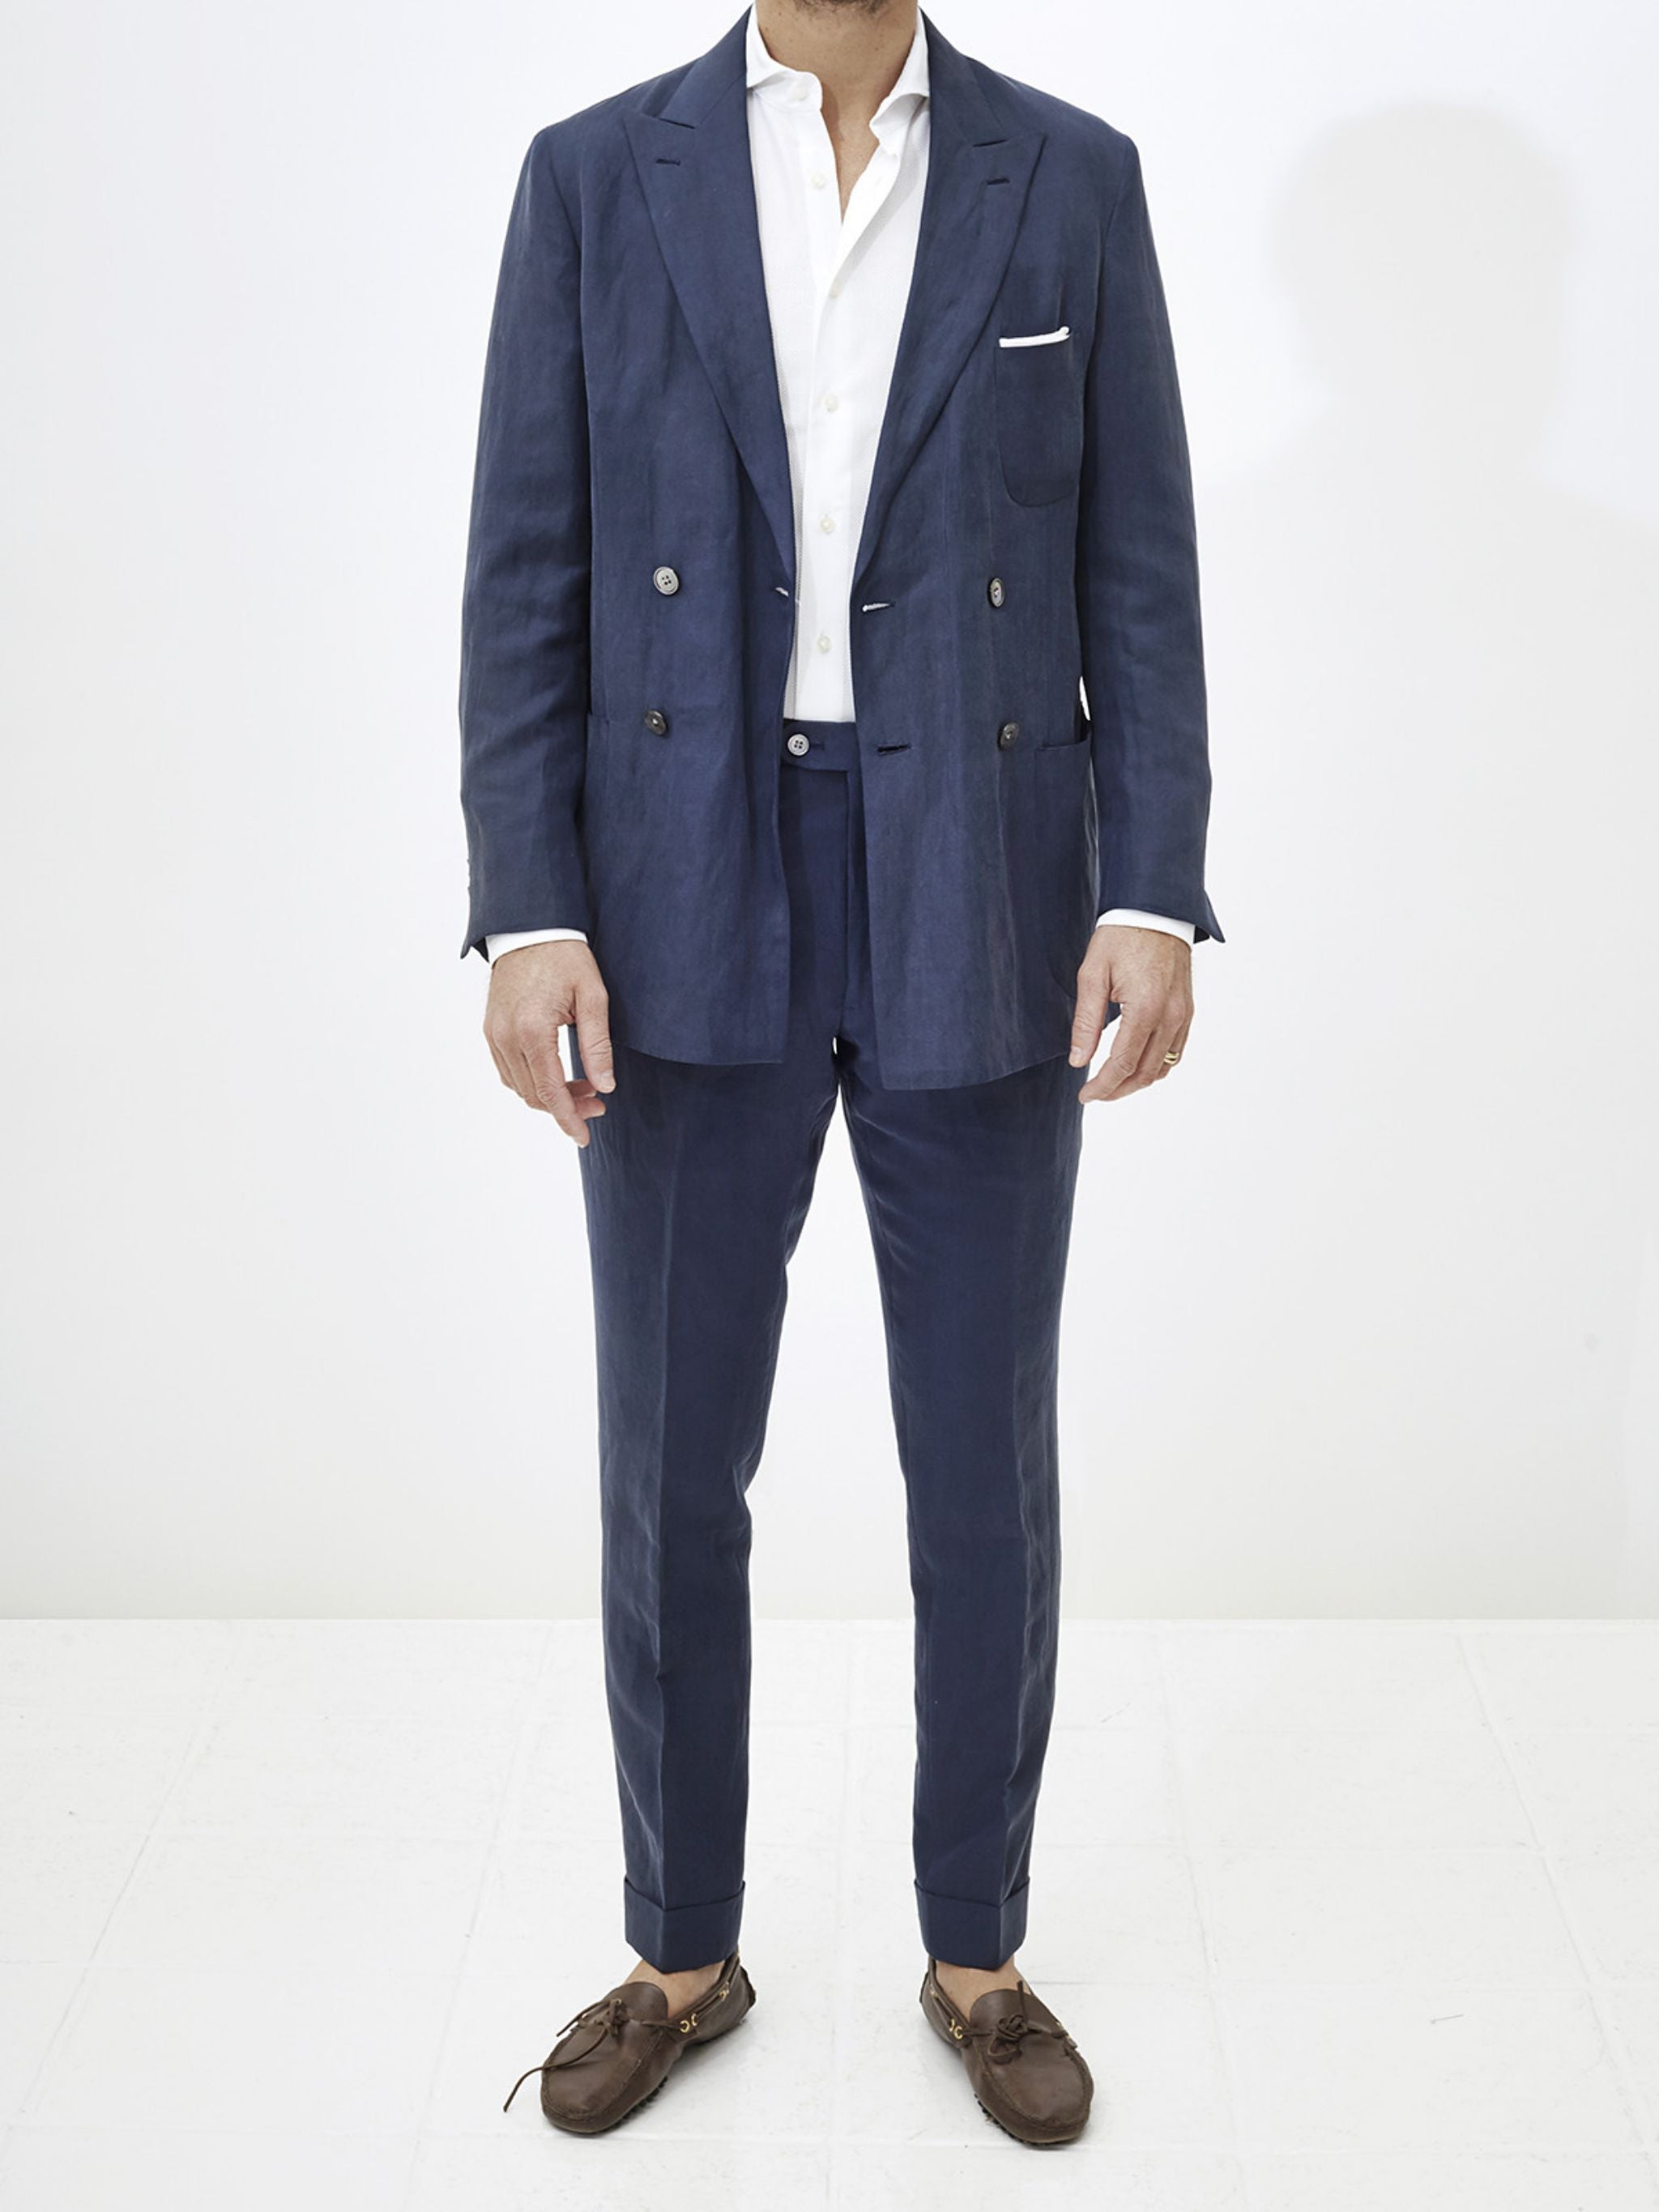 Patrick Johnson lookbook 2015 - 6